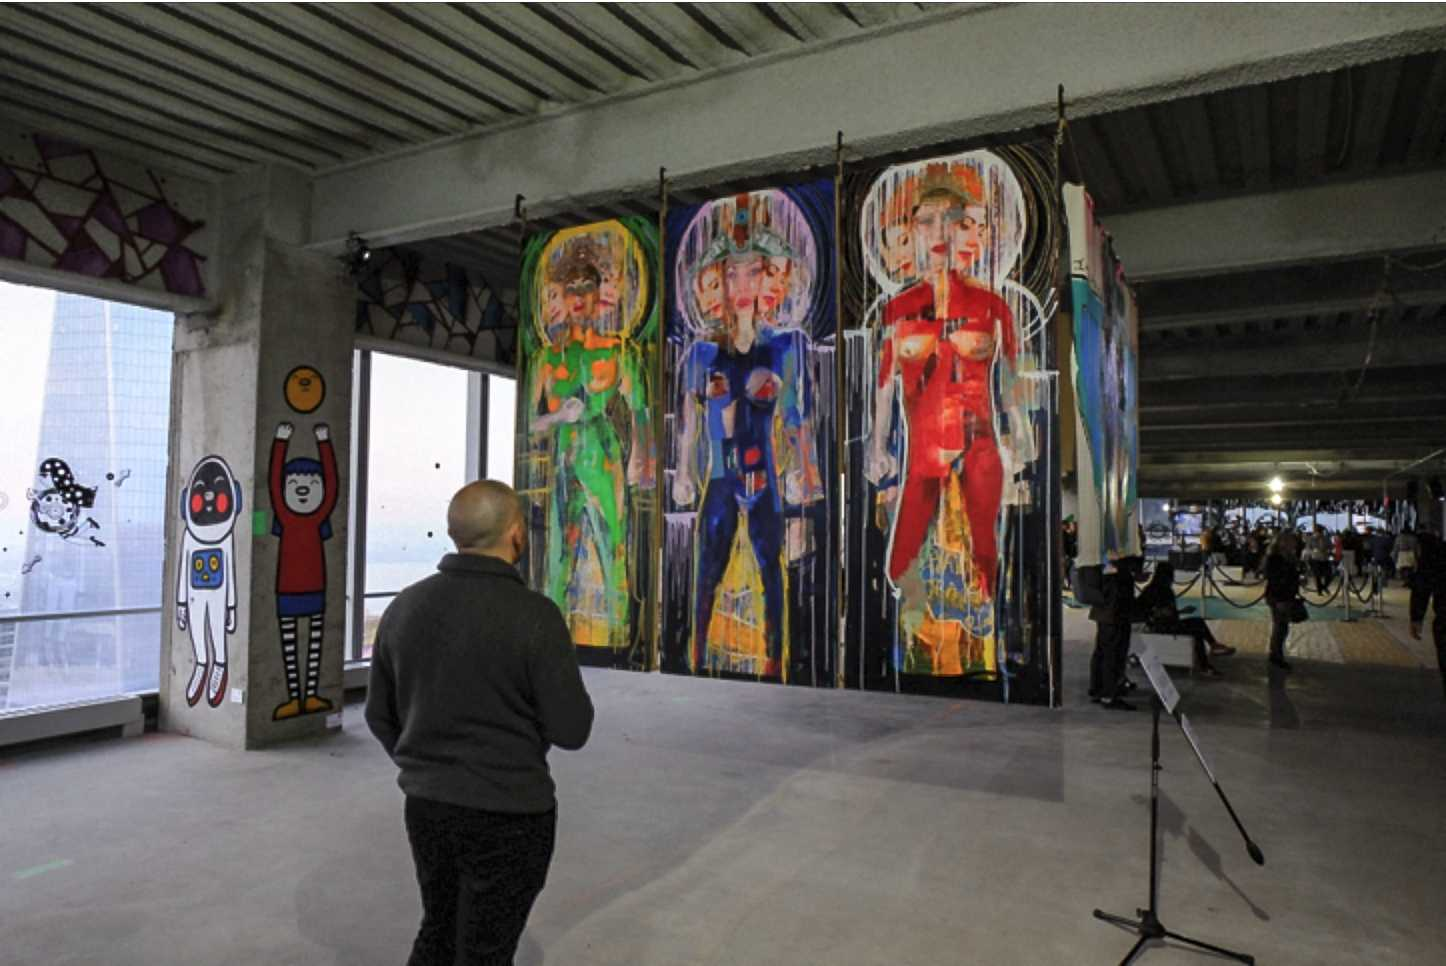 The 69th floor of 4 World Trade Center displays murals and sculptures by over 50 different street artists. The project is  headed by curators Doug Smith, Jane Chun Smith and Joshua Geyer in collaboration with Executive in Charge of Production Robert Marcucci.